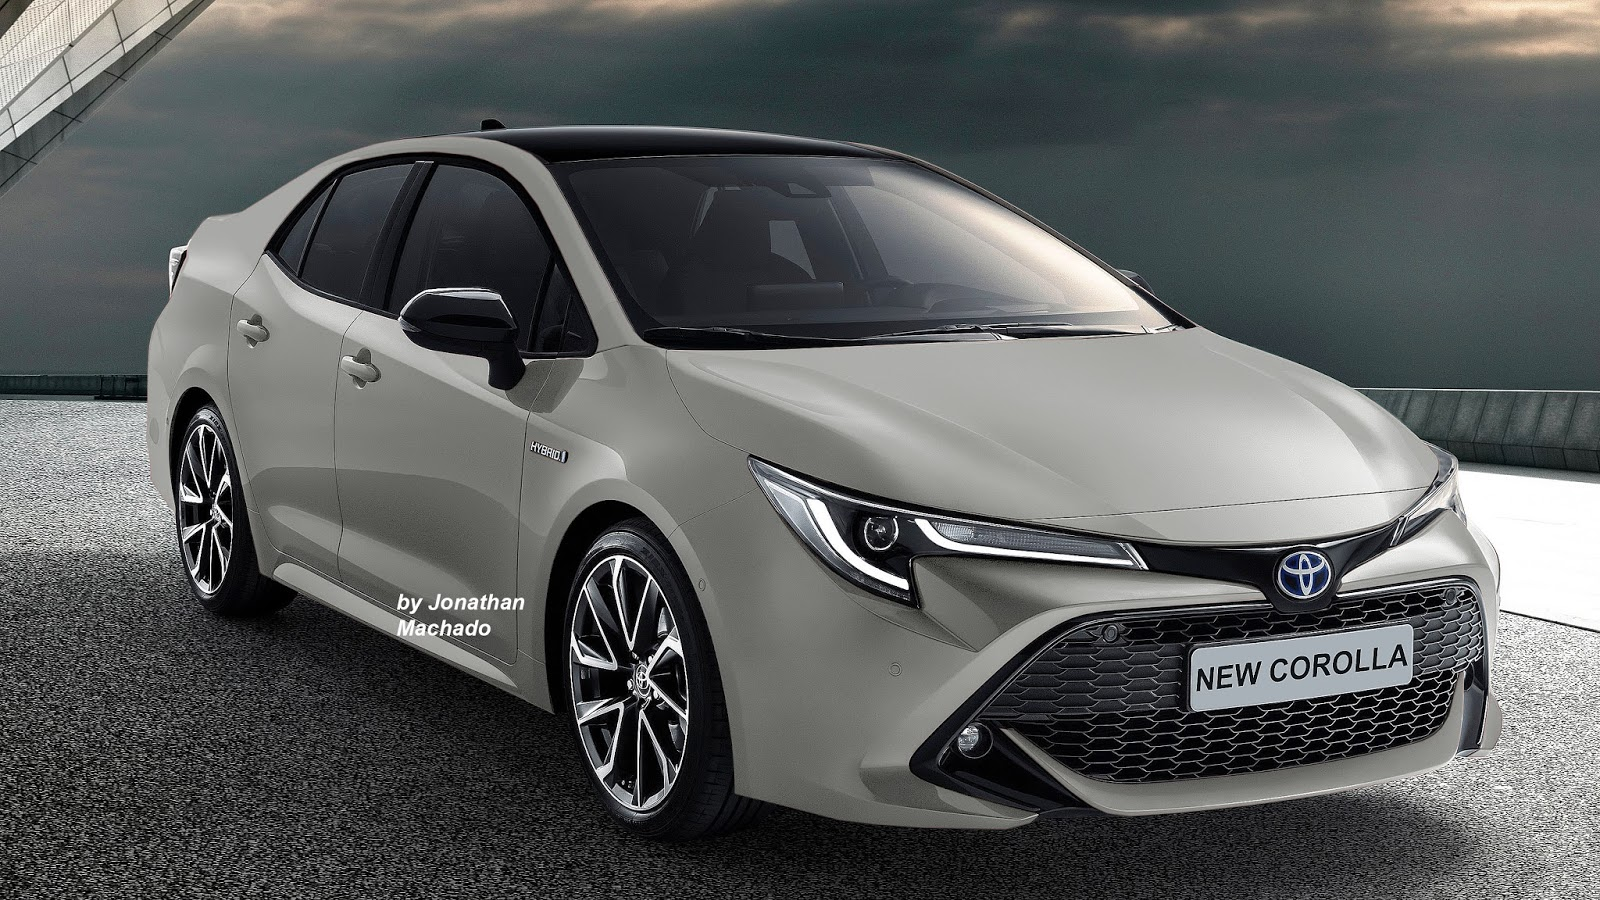 Renderings: Next Generation Toyota Corolla Imagined 1